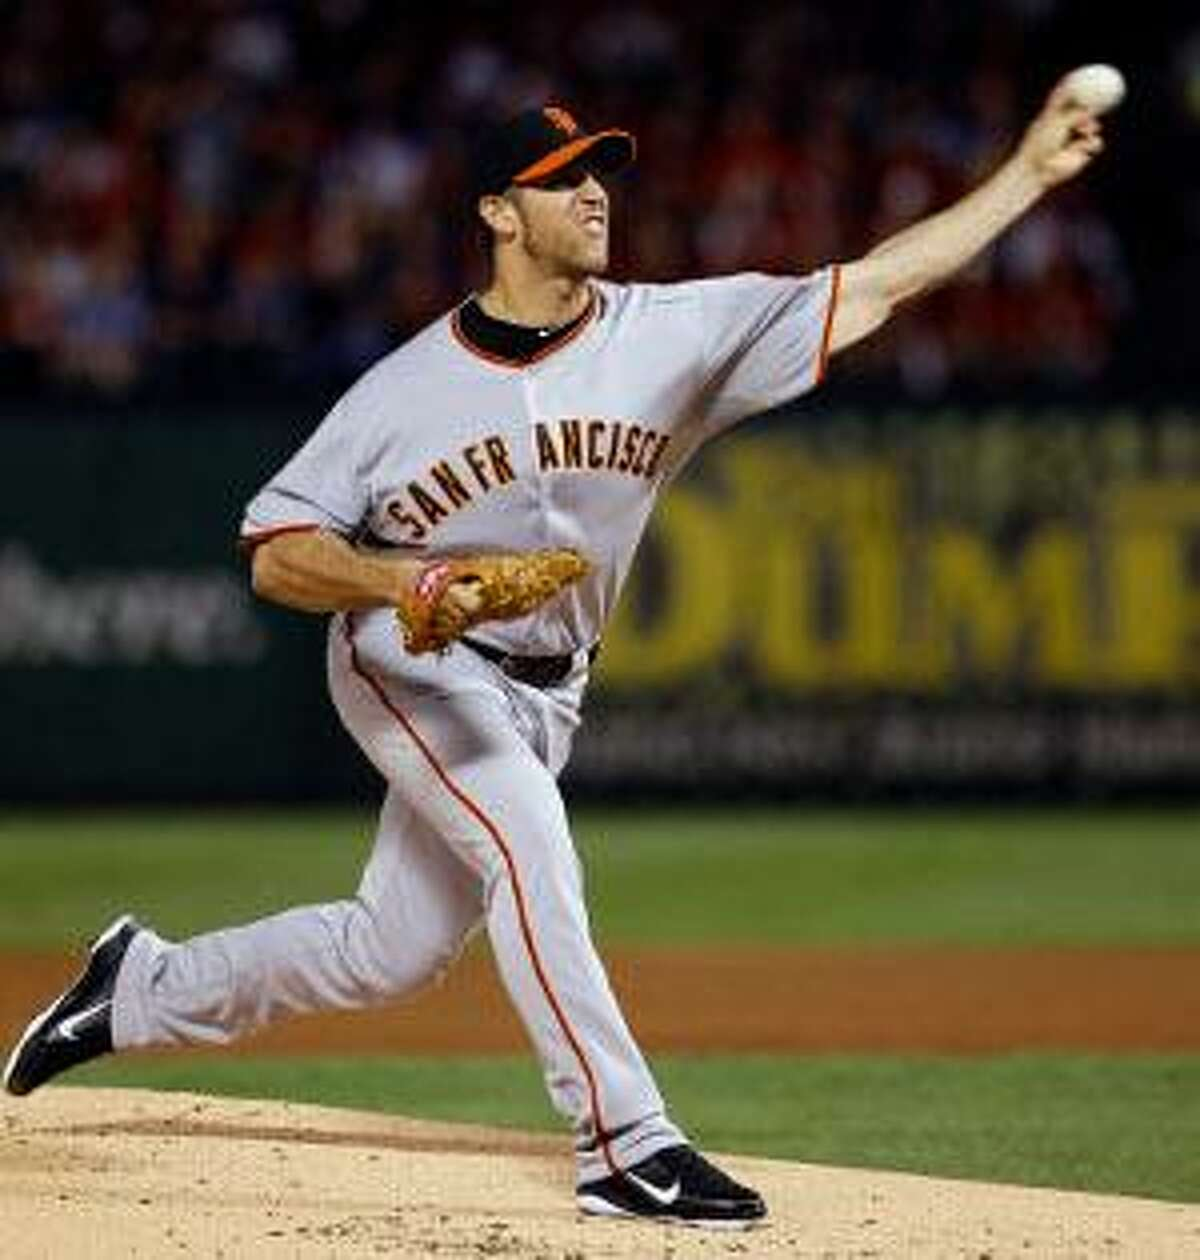 San Francisco Giants starting pitcher Madison Bumgarner throws during the first inning of Game 4 of the World Series against the Texas Rangers Sunday, in Arlington, Texas. (AP Photo/Matt Slocum)